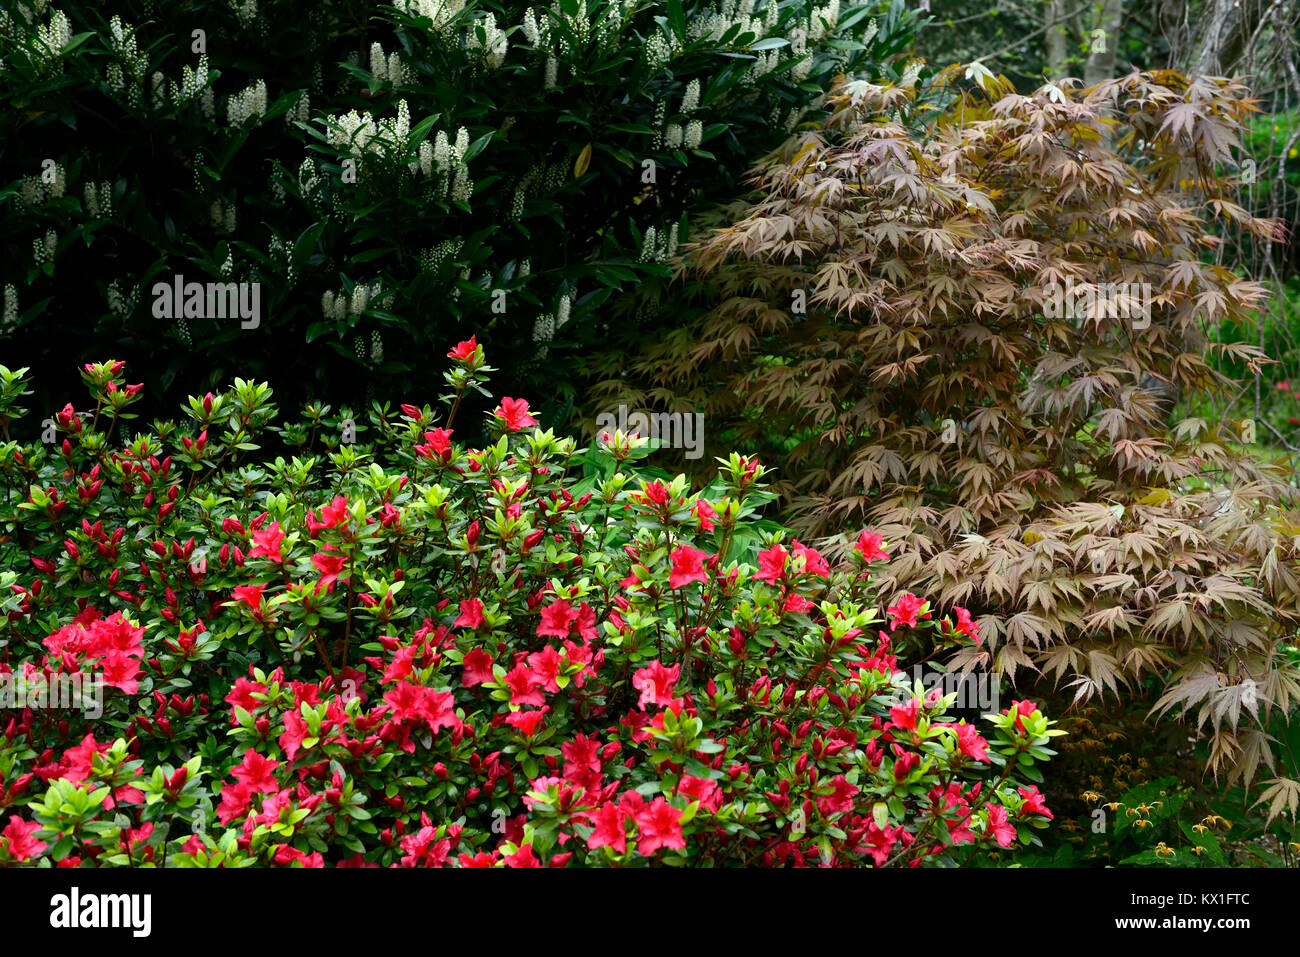 Prunus Laurocerasuscherry Laurelacer Palmatumred Stock Photo